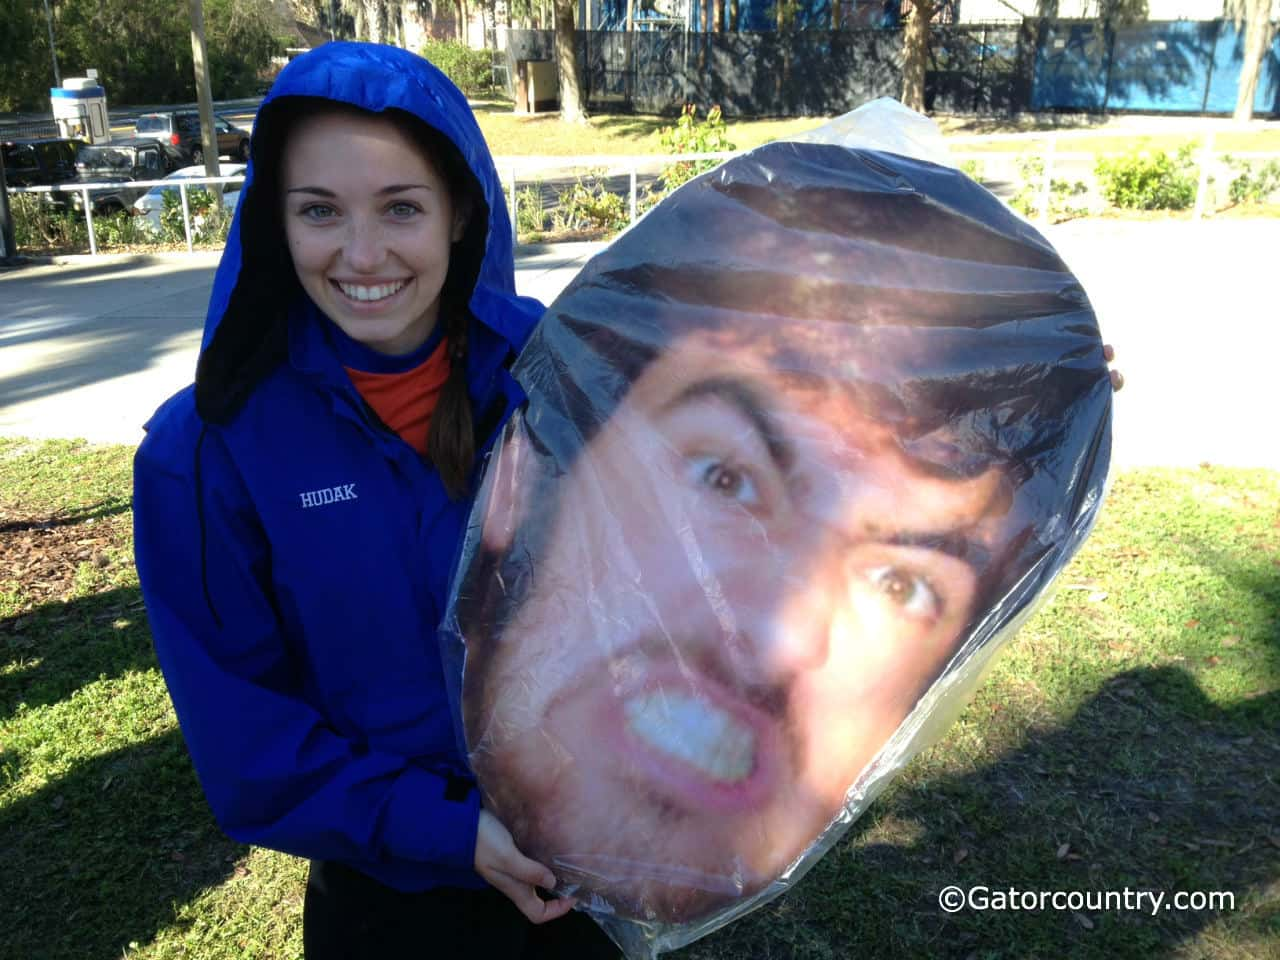 Florida rowing team member Lauren Hudak holds up a big head of her coach.